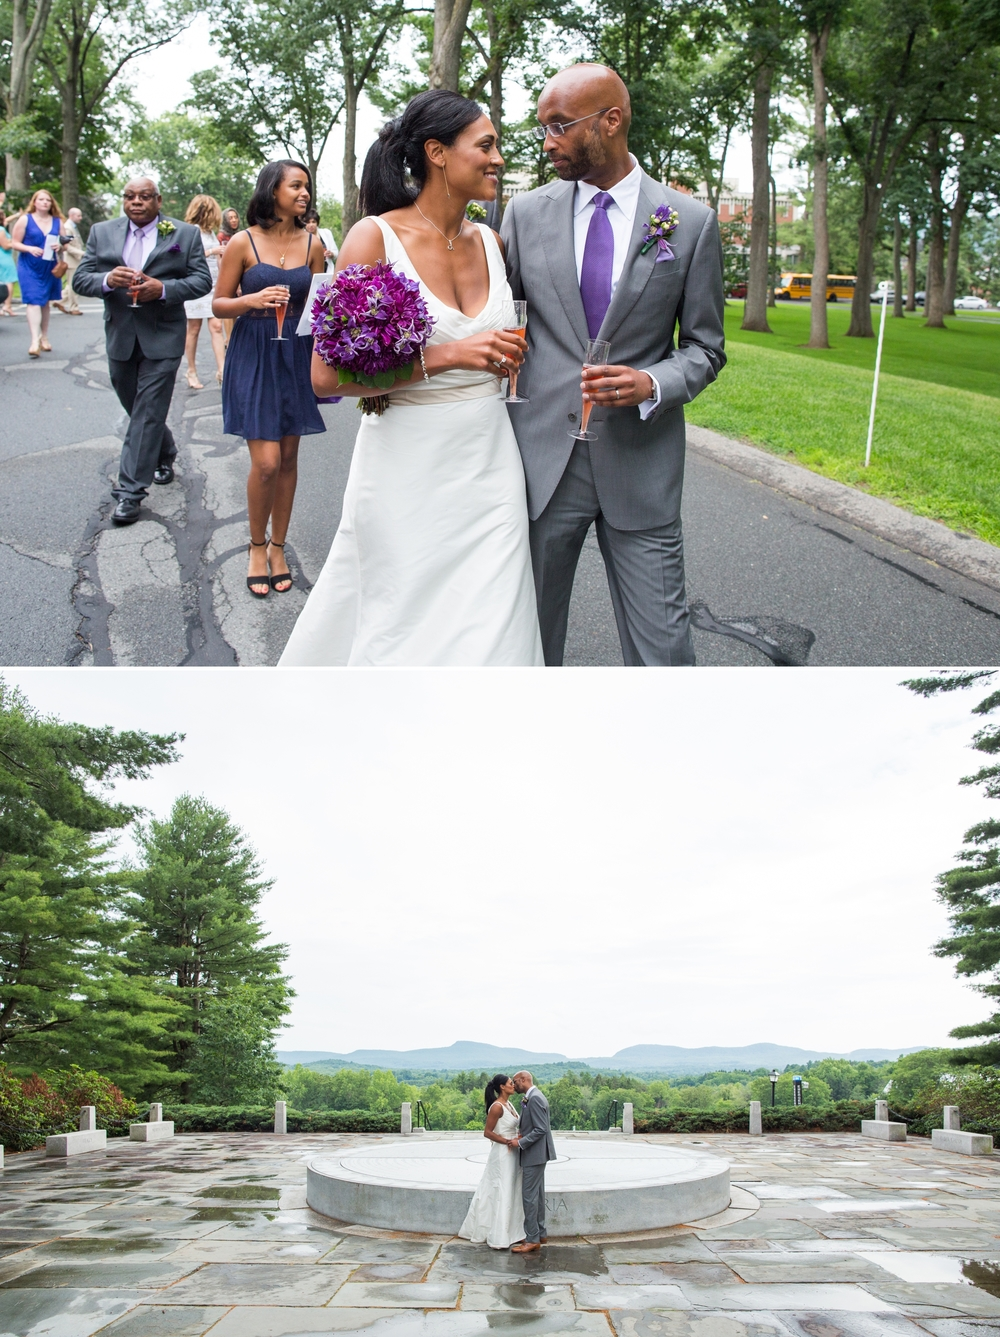 LordJefferyInnWedding_HolidayJuly4thWedding_AmherstMA_MichelleGirardPhotography23.jpg